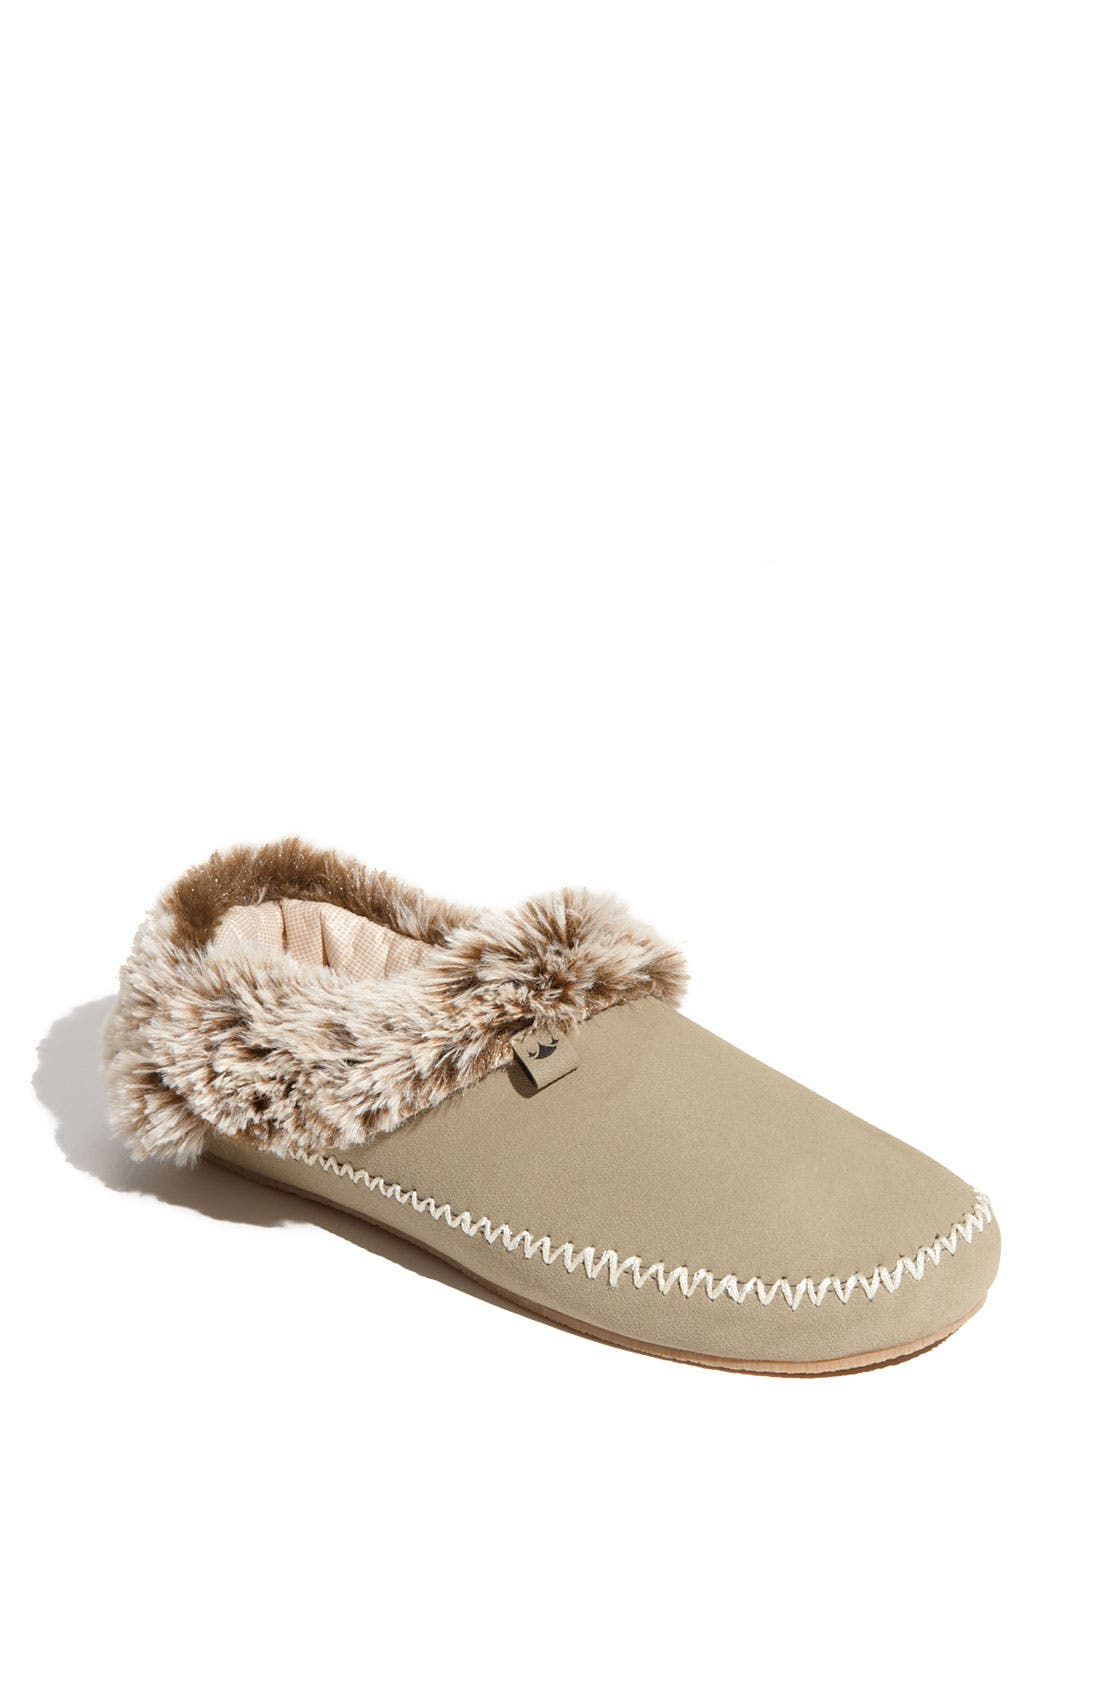 Main Image - Freewaters 'Cloudnine' Slipper